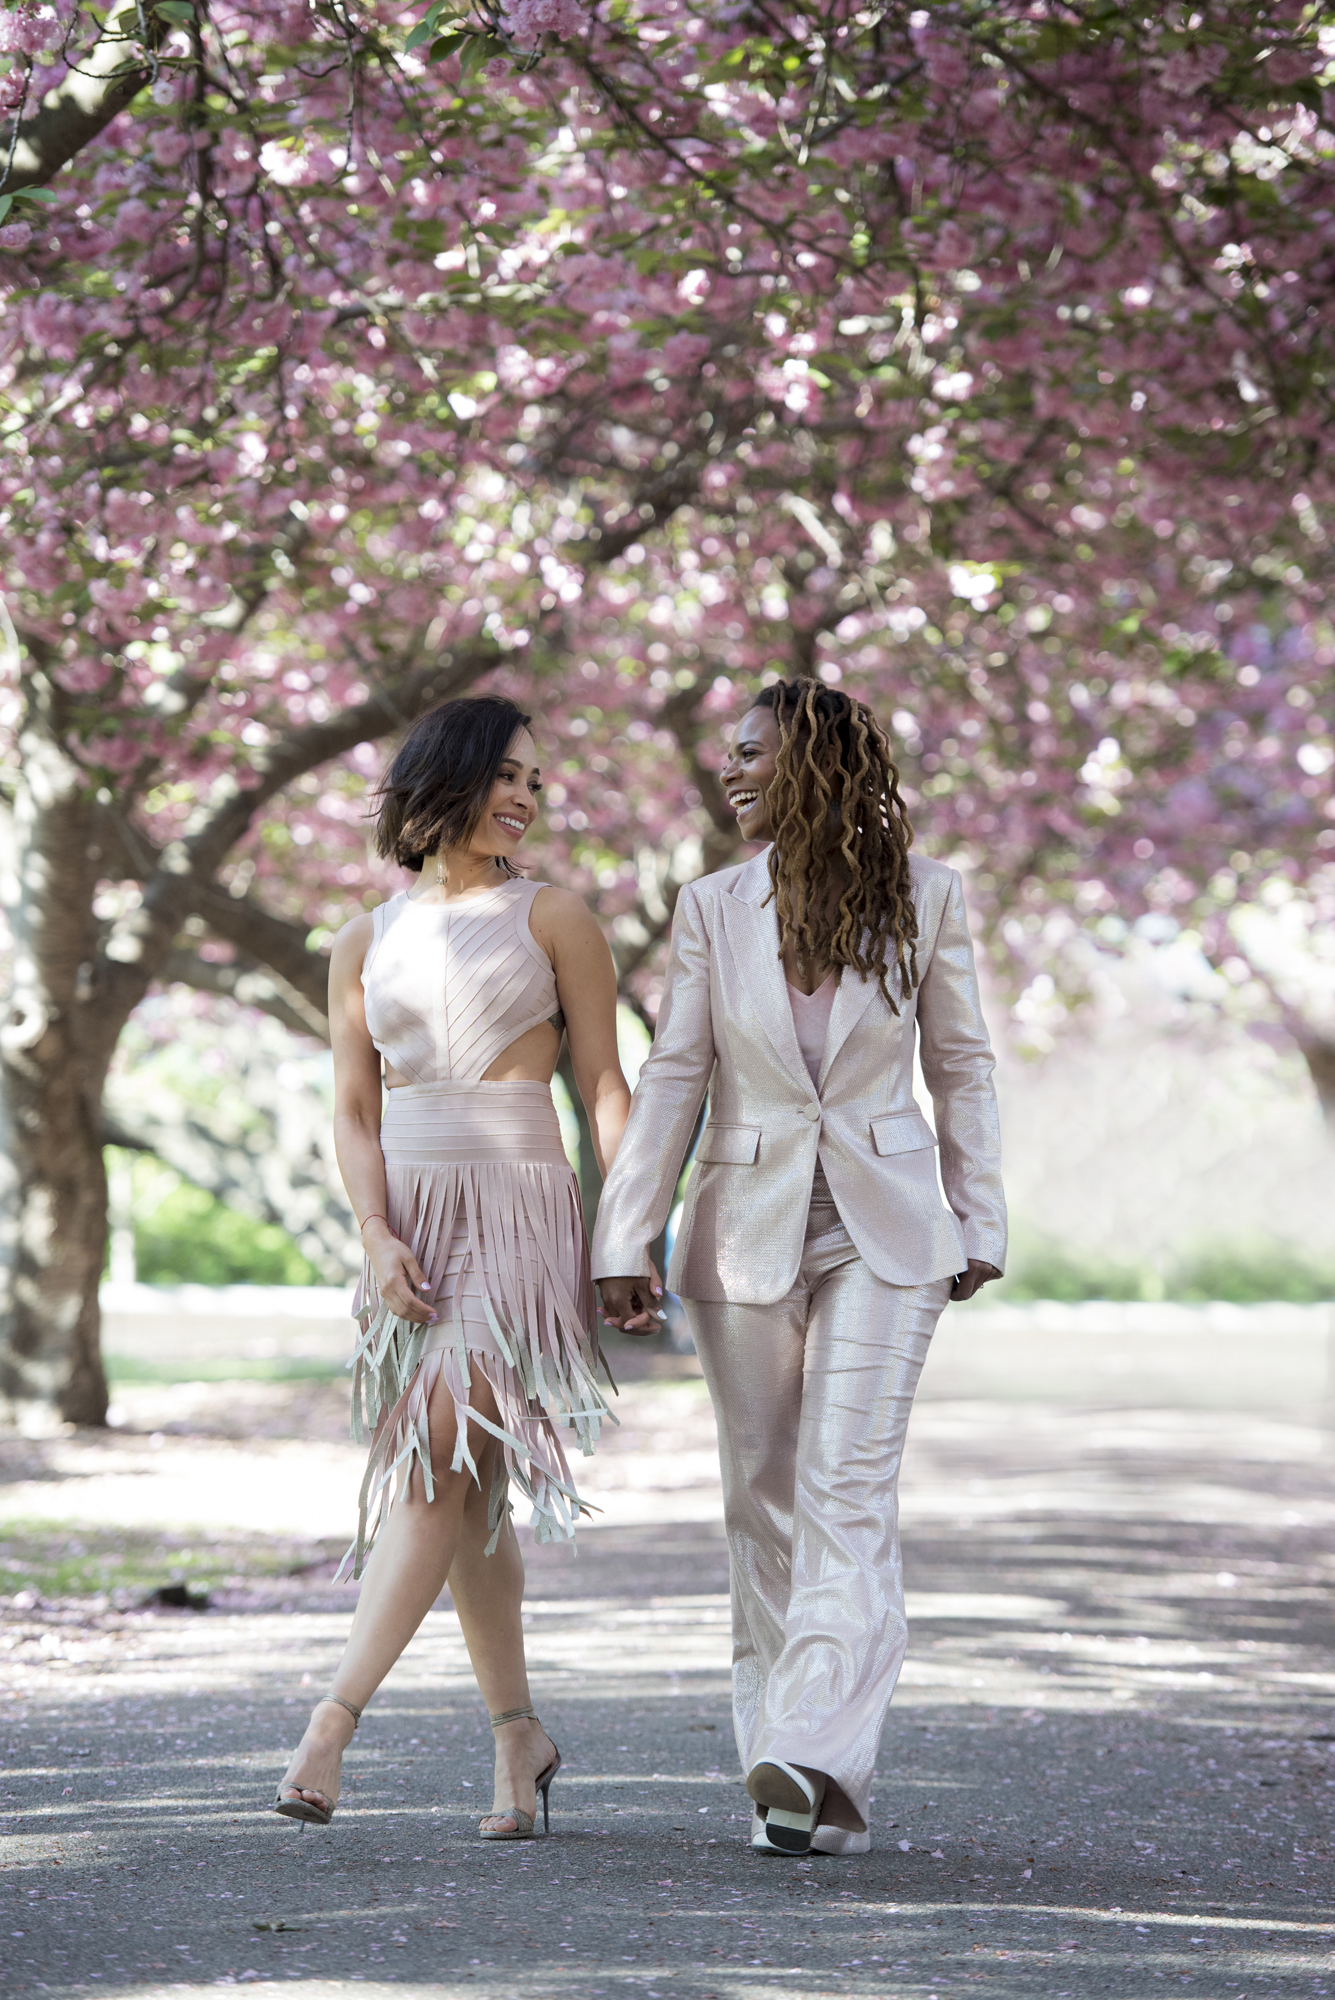 Two women walk down a path in the park